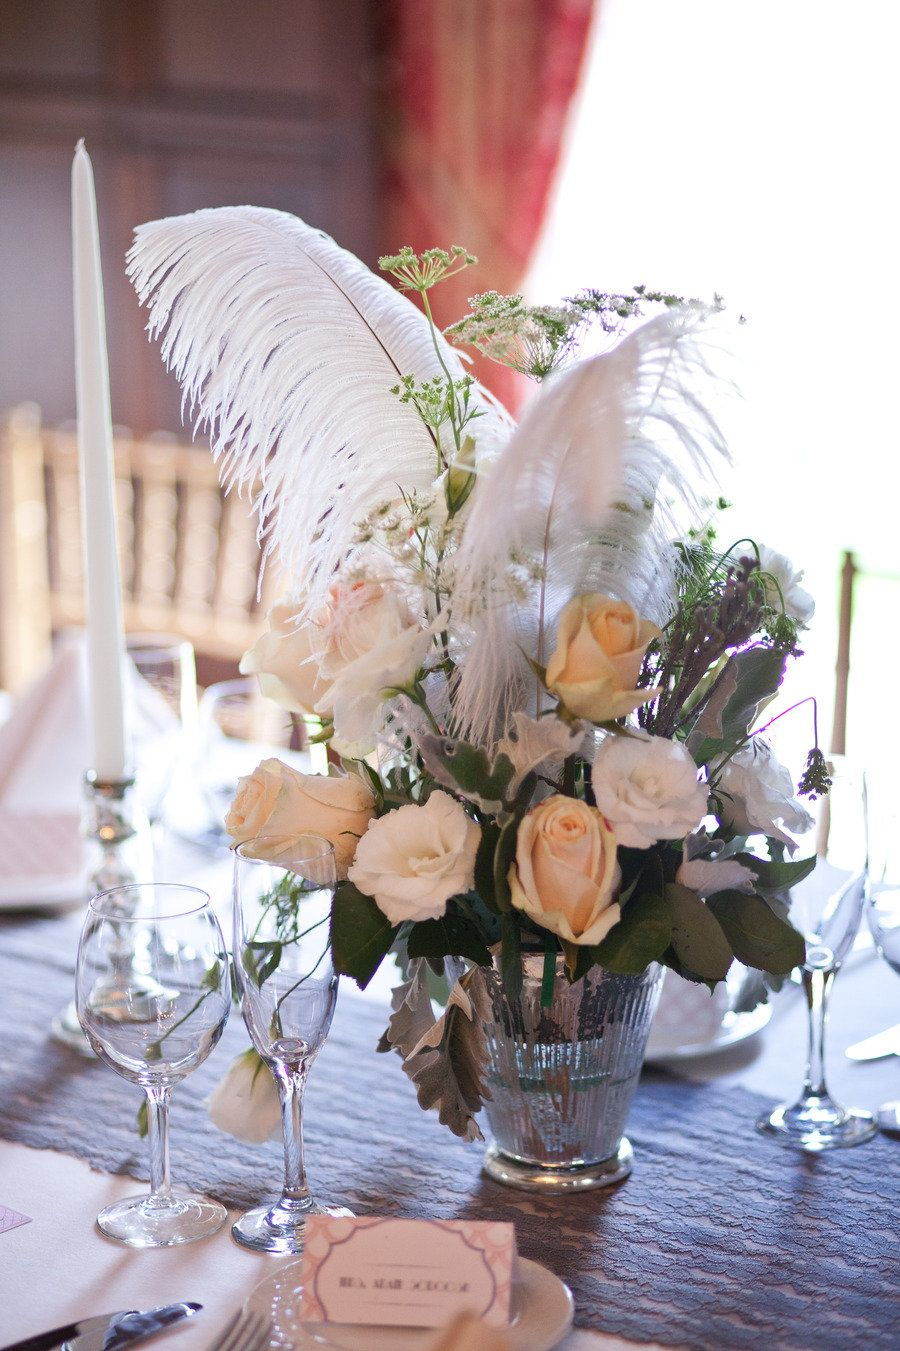 Tablescape Centerpiece The Great Gatsby us Inspired mercury